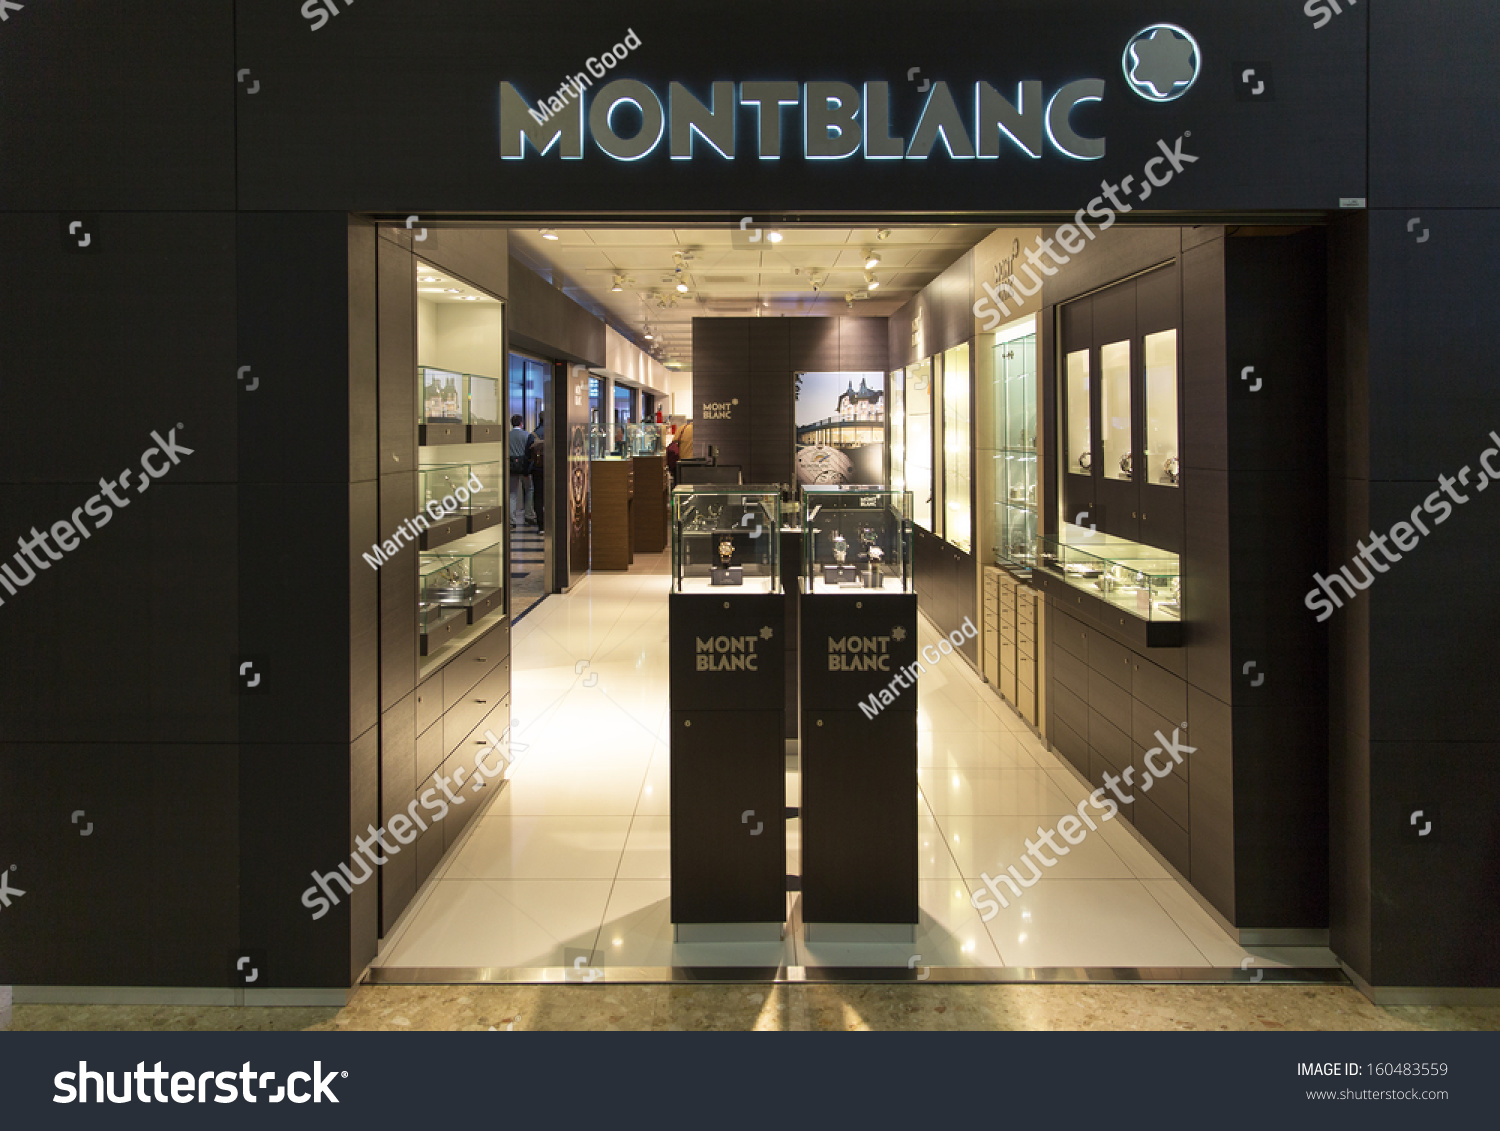 Geneva october 21 a montblanc outlet october 21 2013 for Jewelry stores in geneva switzerland